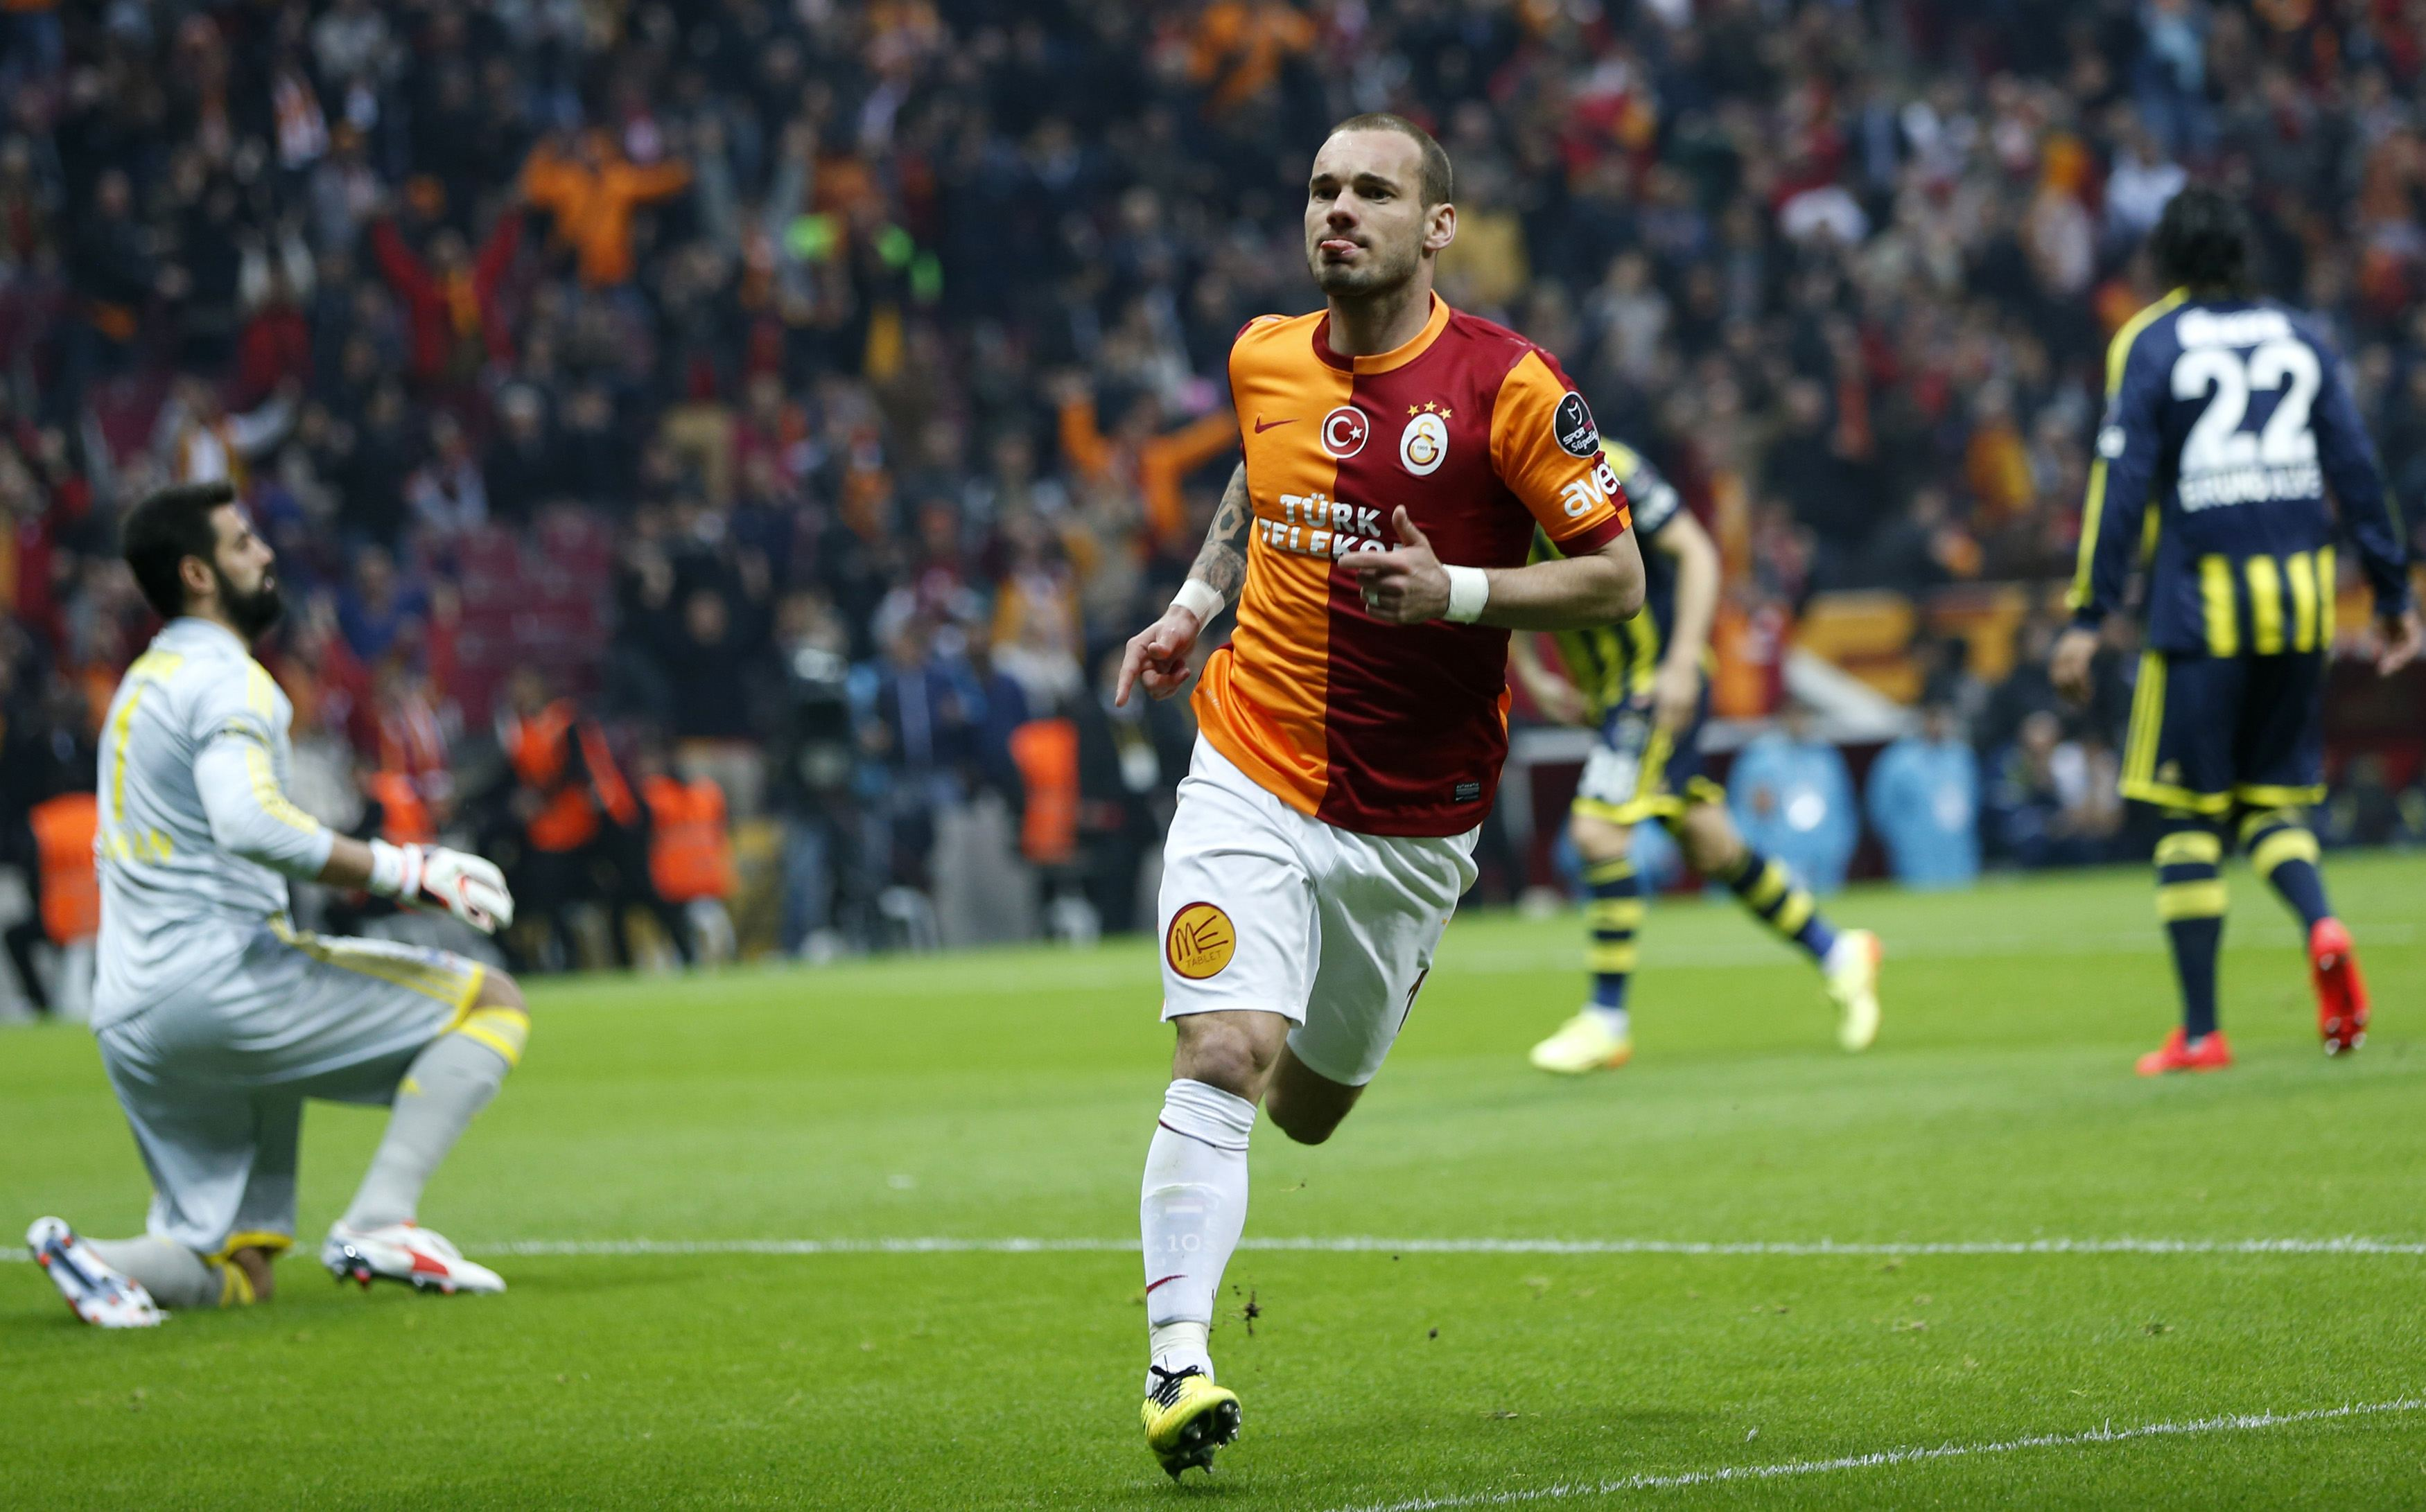 Galatasaray's Sneijder celebrates after scoring a goal against Fenerbahce during their Turkish Super League derby soccer match in Istanbul